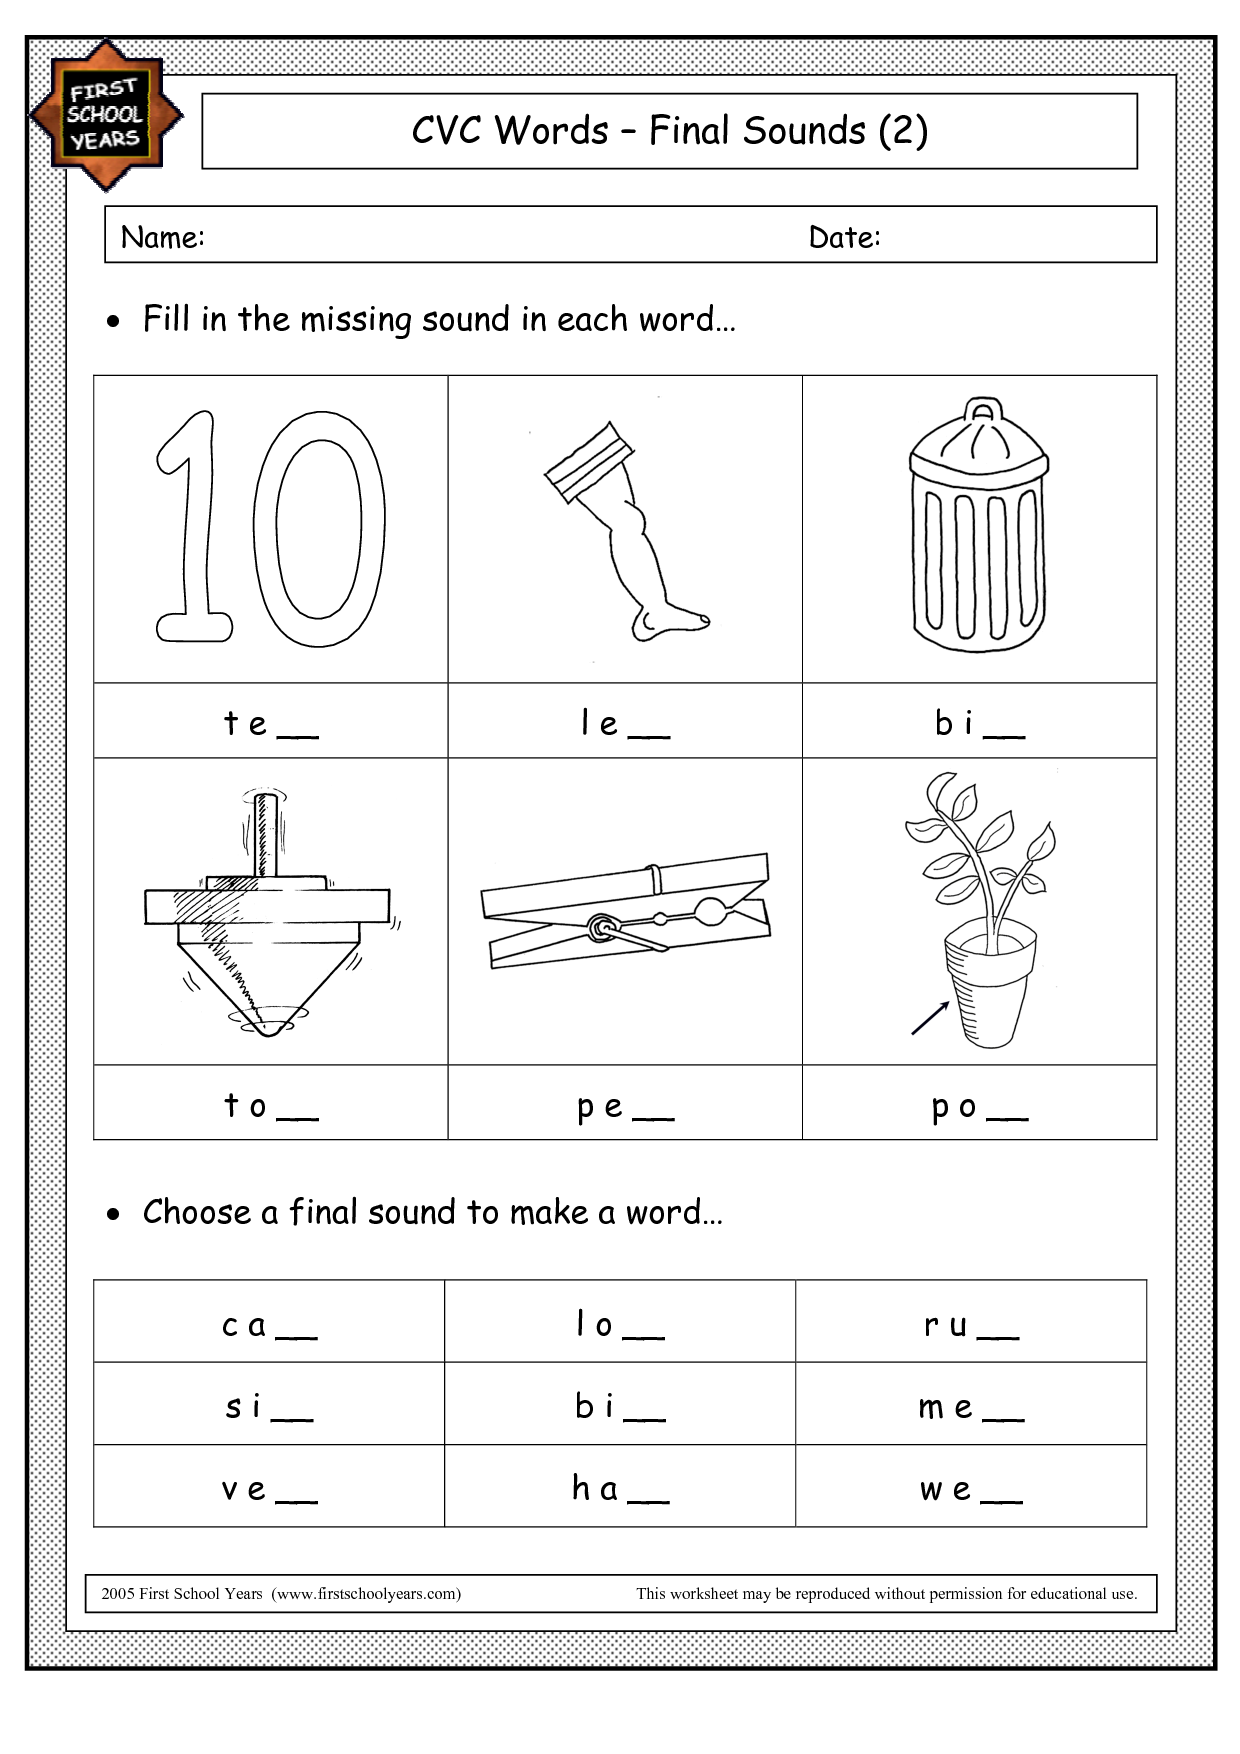 Ending Sound Worksheet